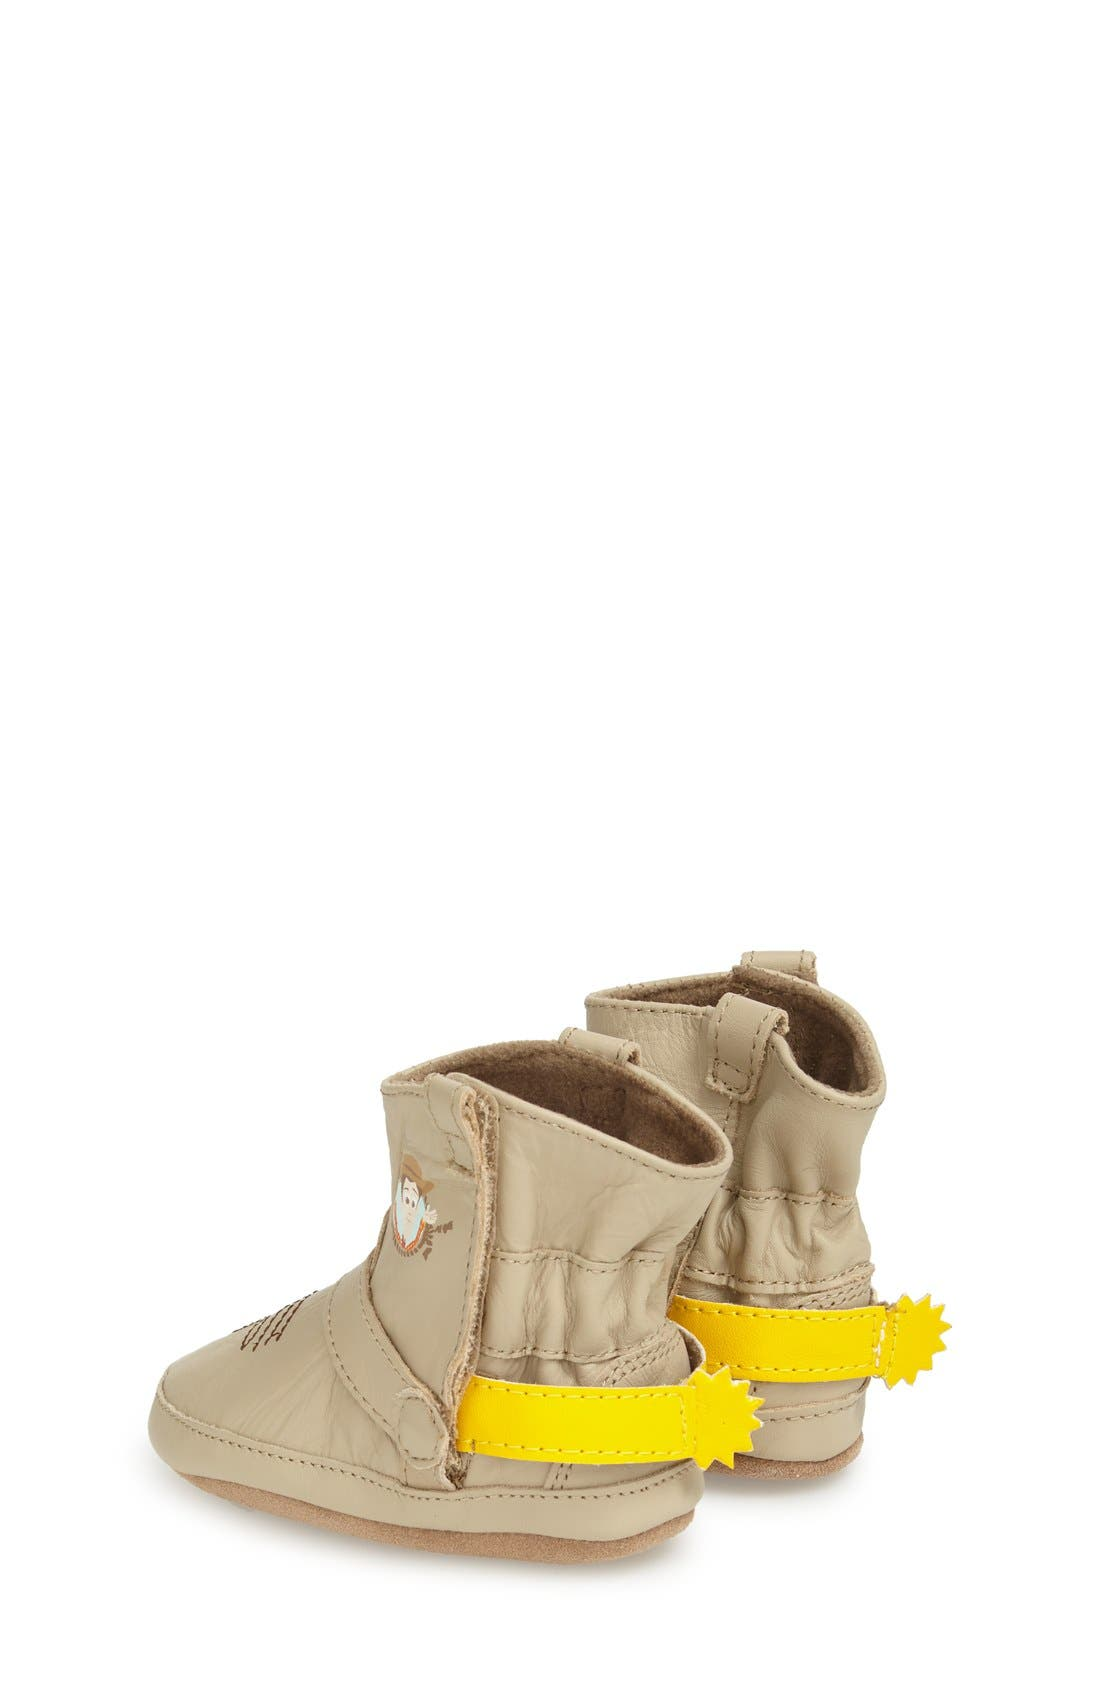 'Disney<sup>®</sup> Woody<sup>®</sup> Bootie' Crib Shoe,                             Alternate thumbnail 2, color,                             Taupe